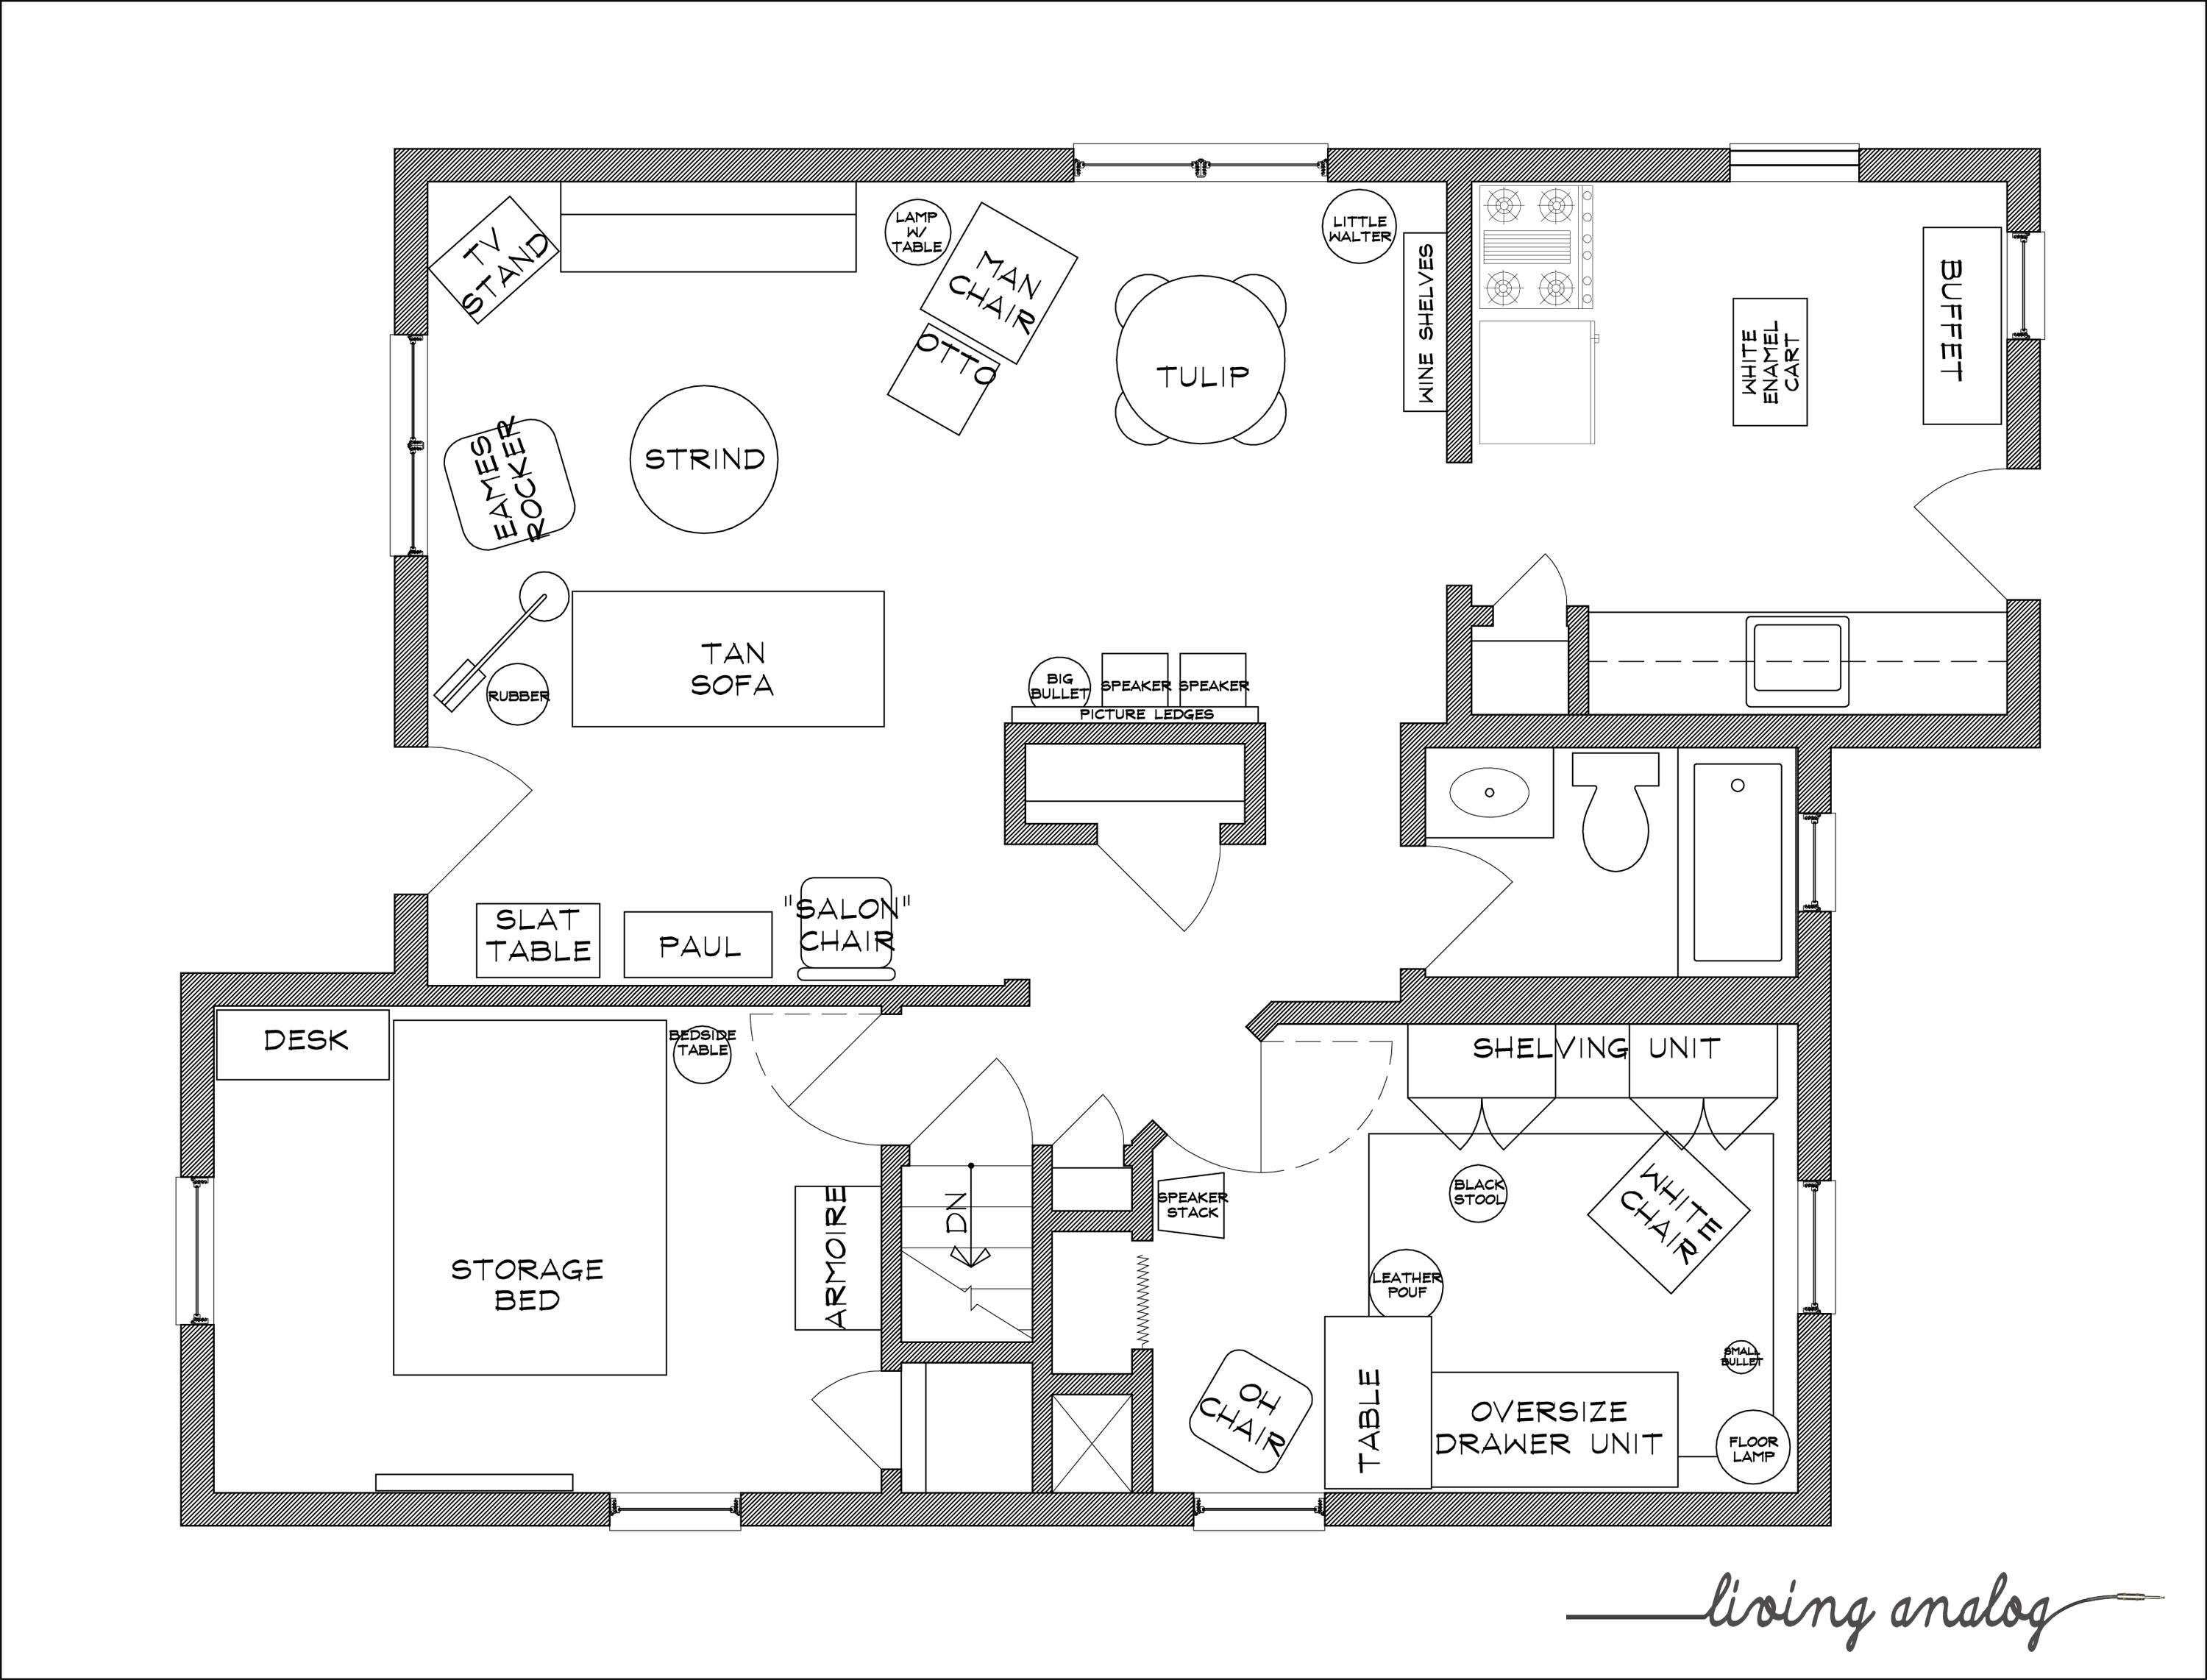 graphic relating to Printable Furniture Templates titled cost-free printable furnishings templates 1/8 scale truly16zmk